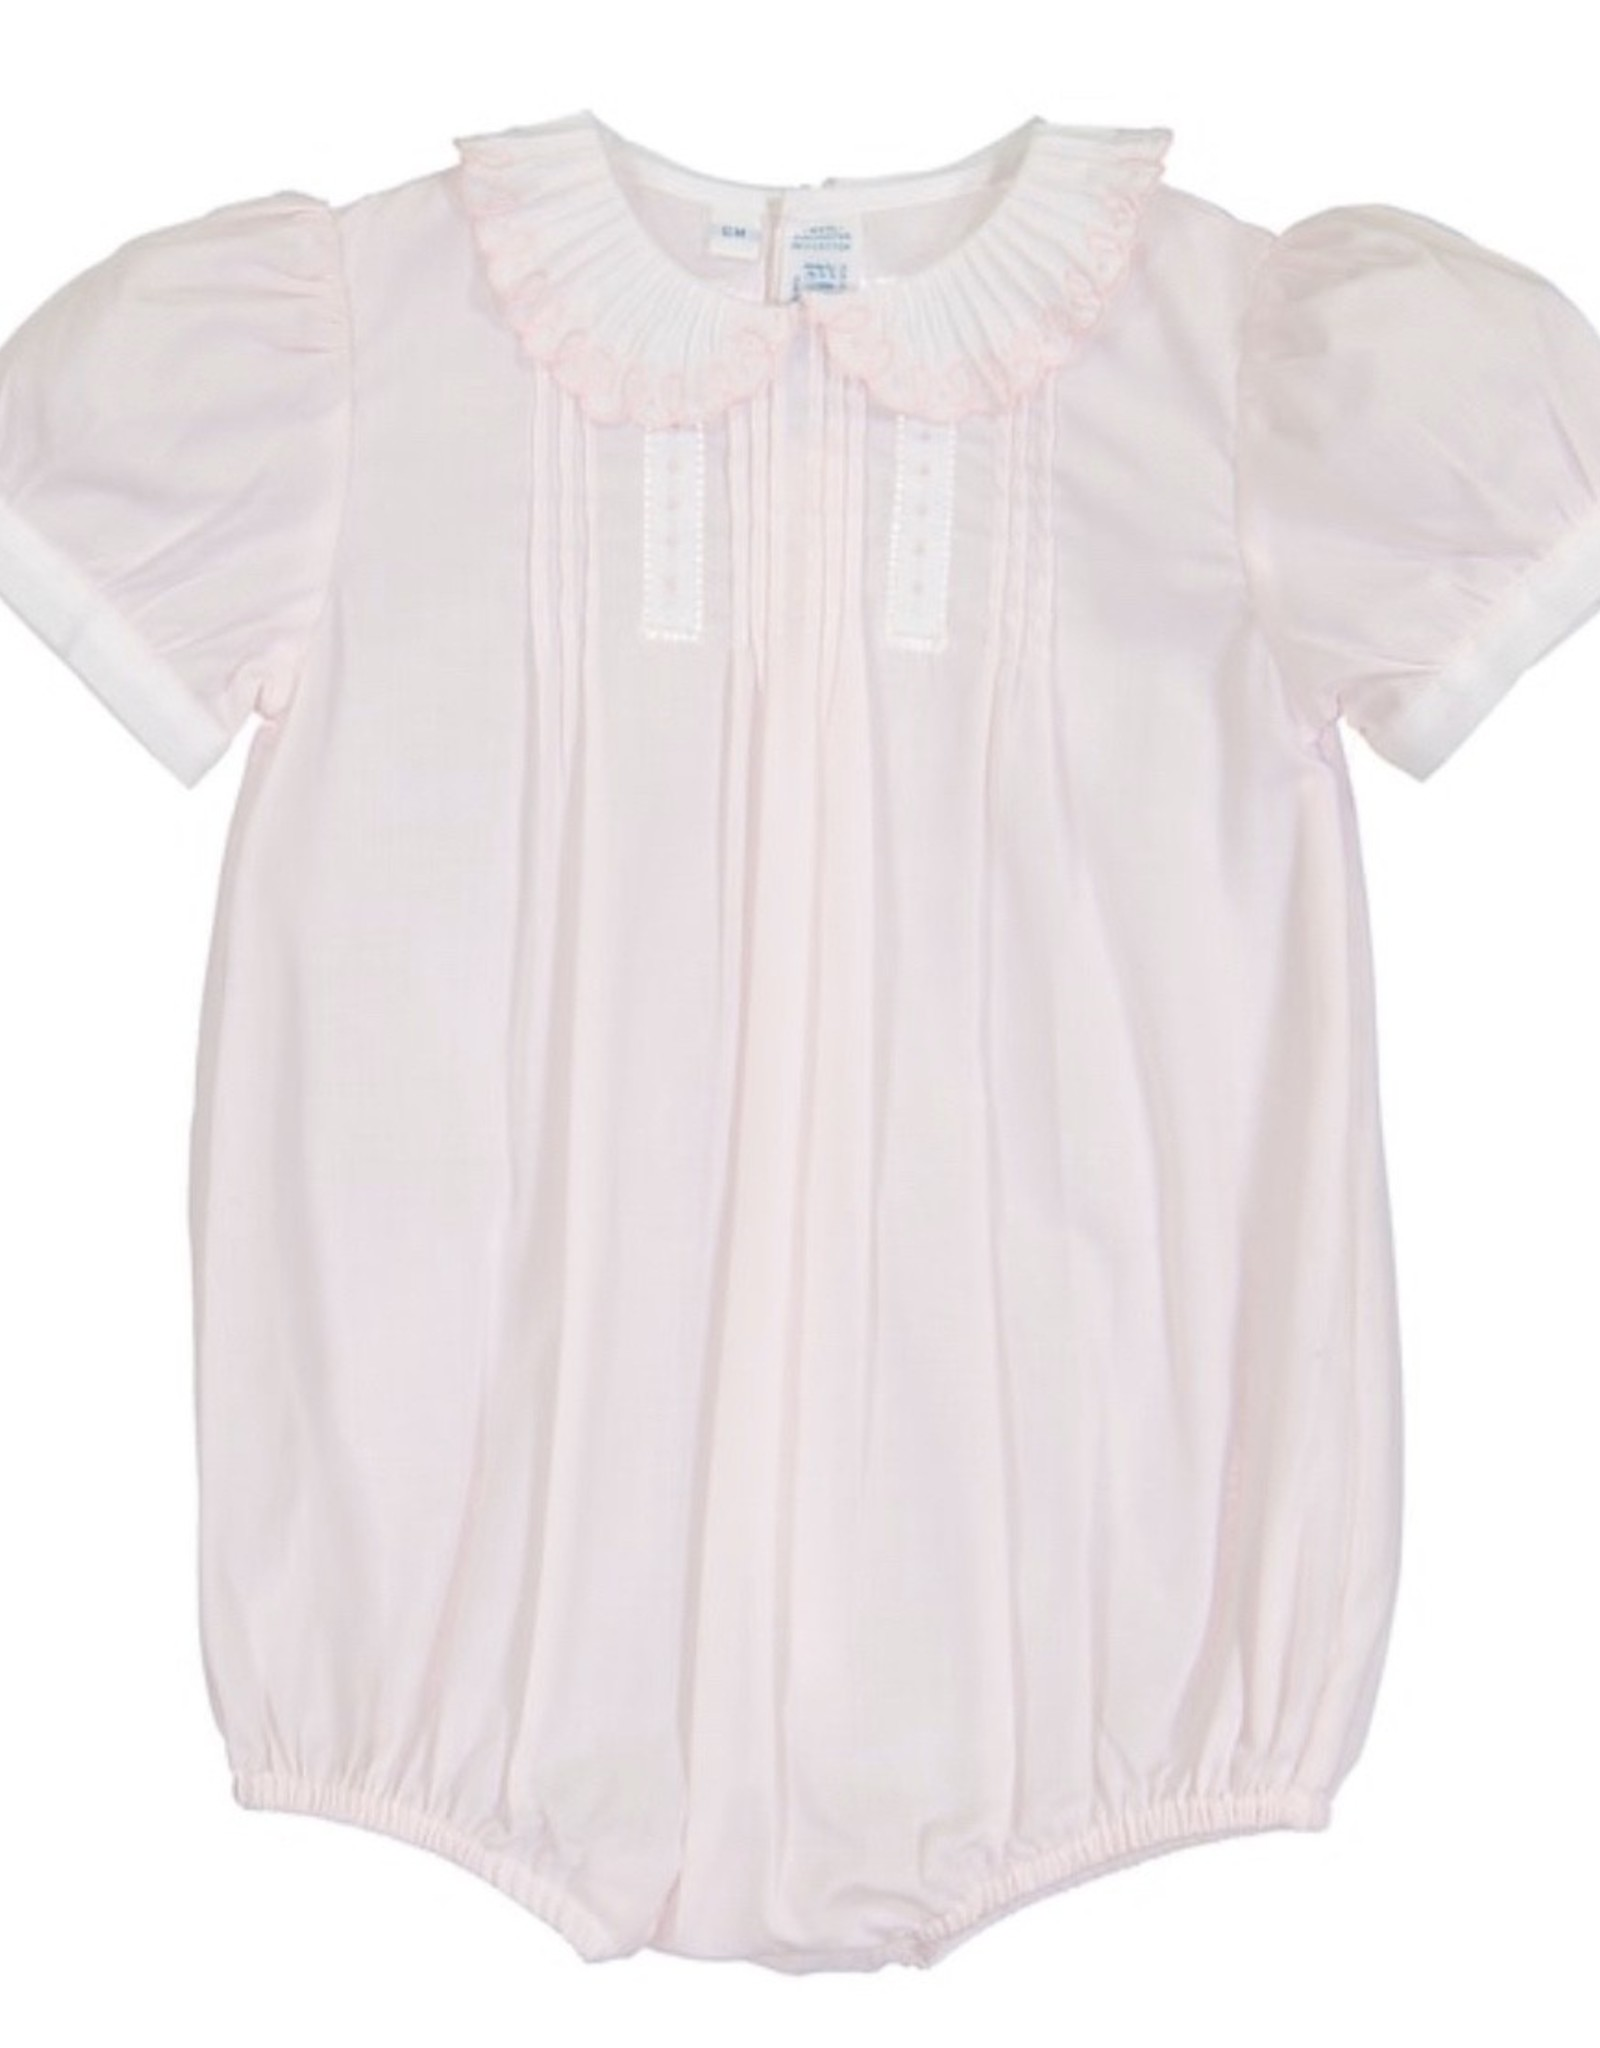 Feltman Brothers Girls Vintage Scalloped collar romper